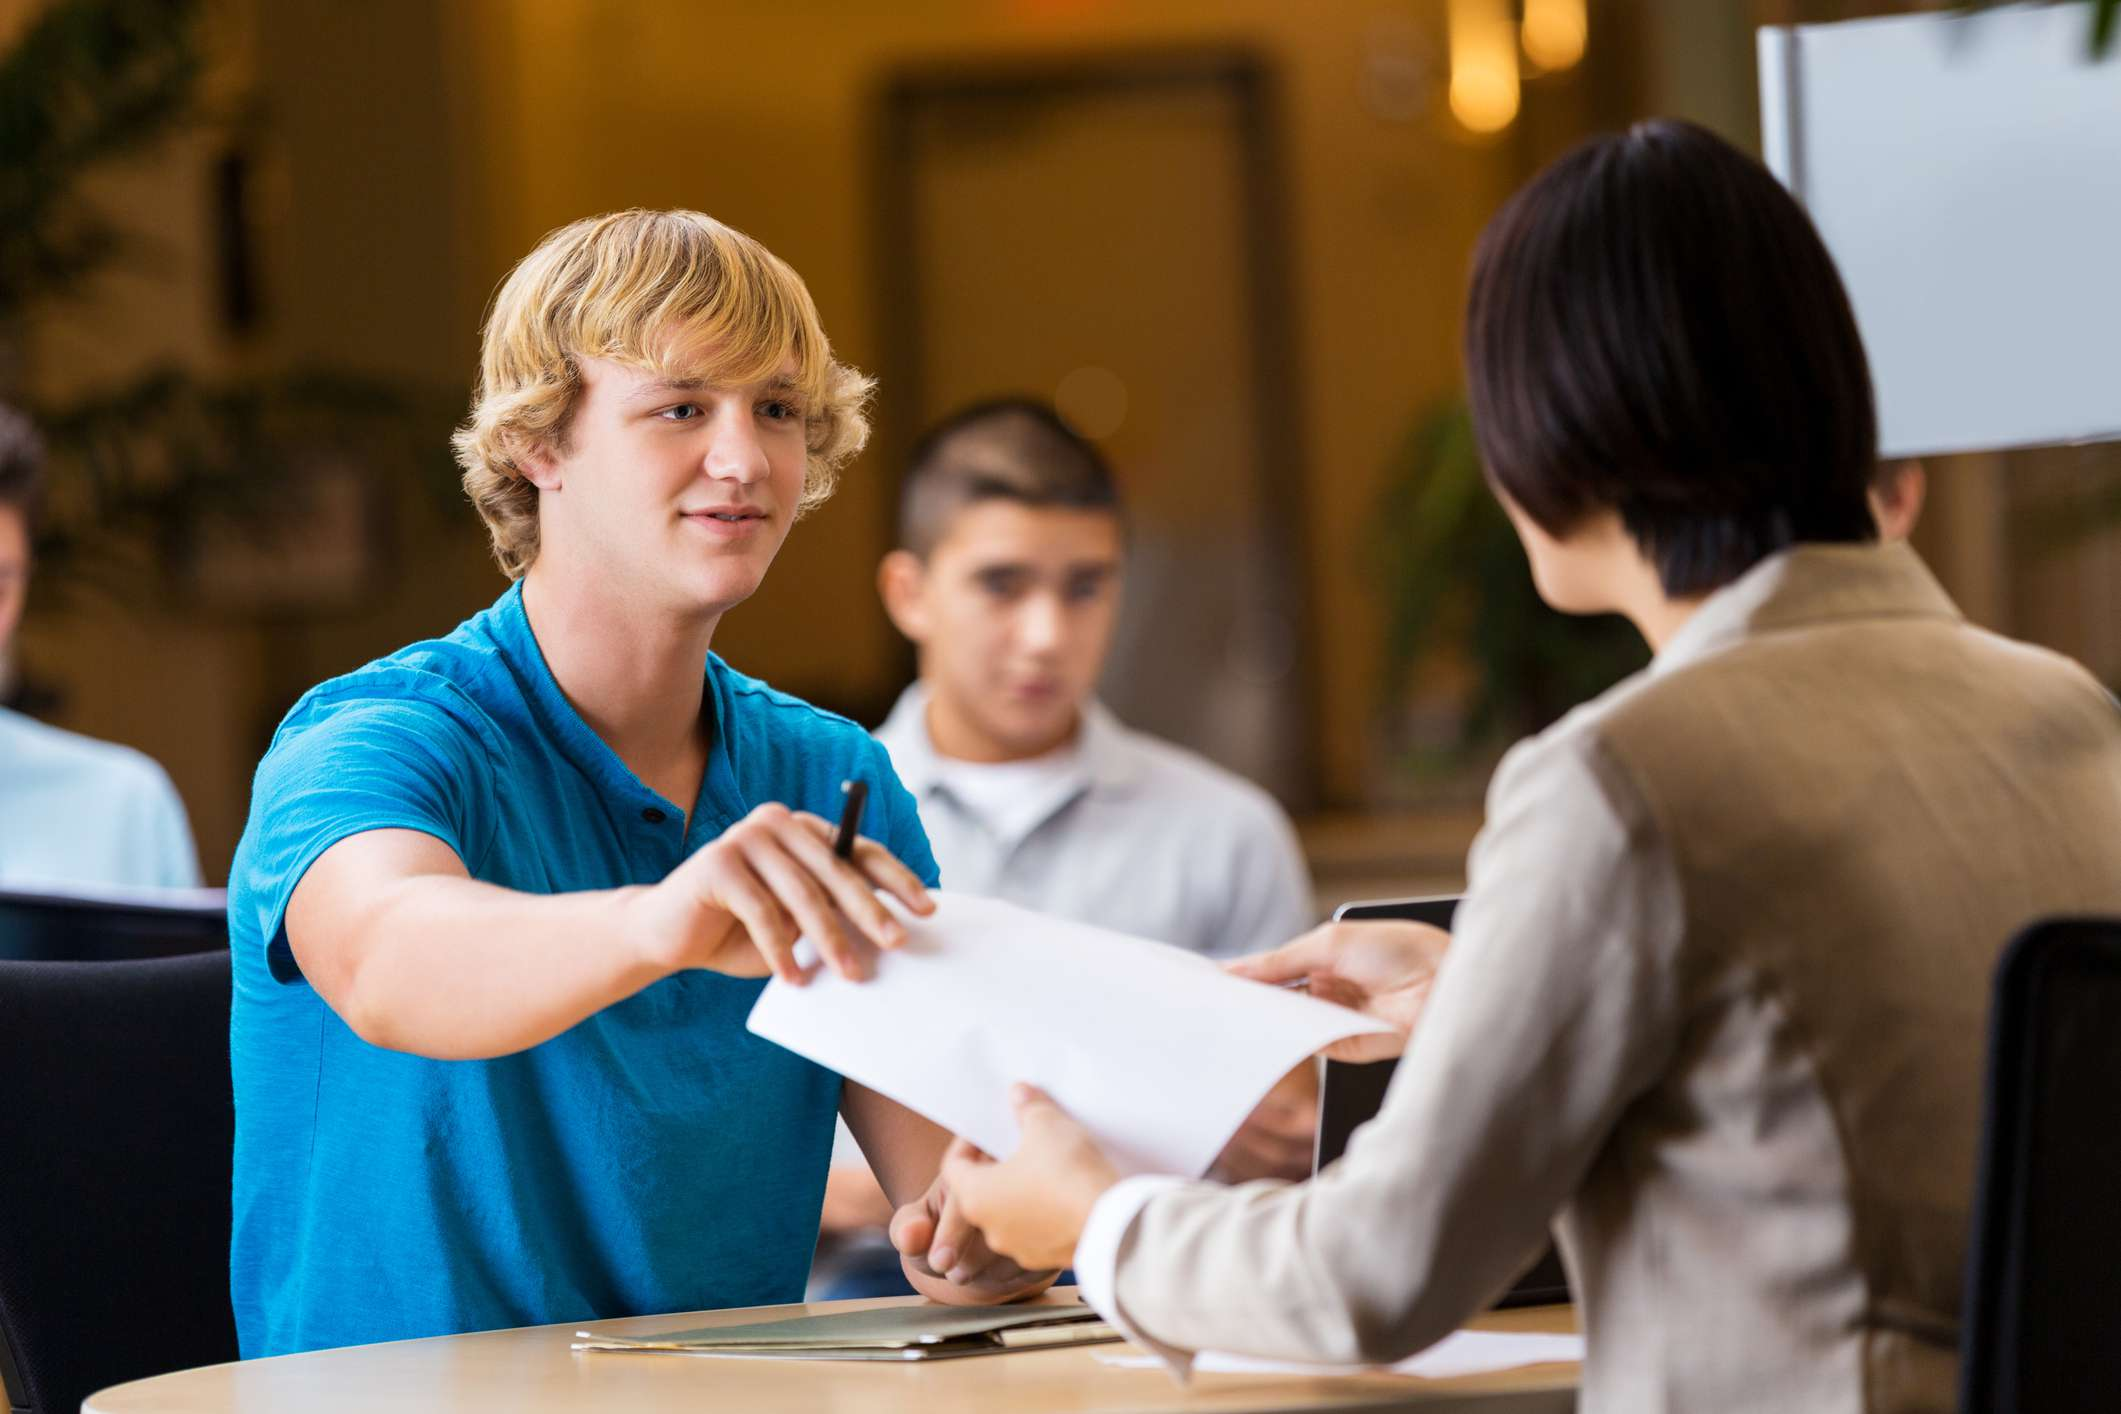 Young student handing paper to employer